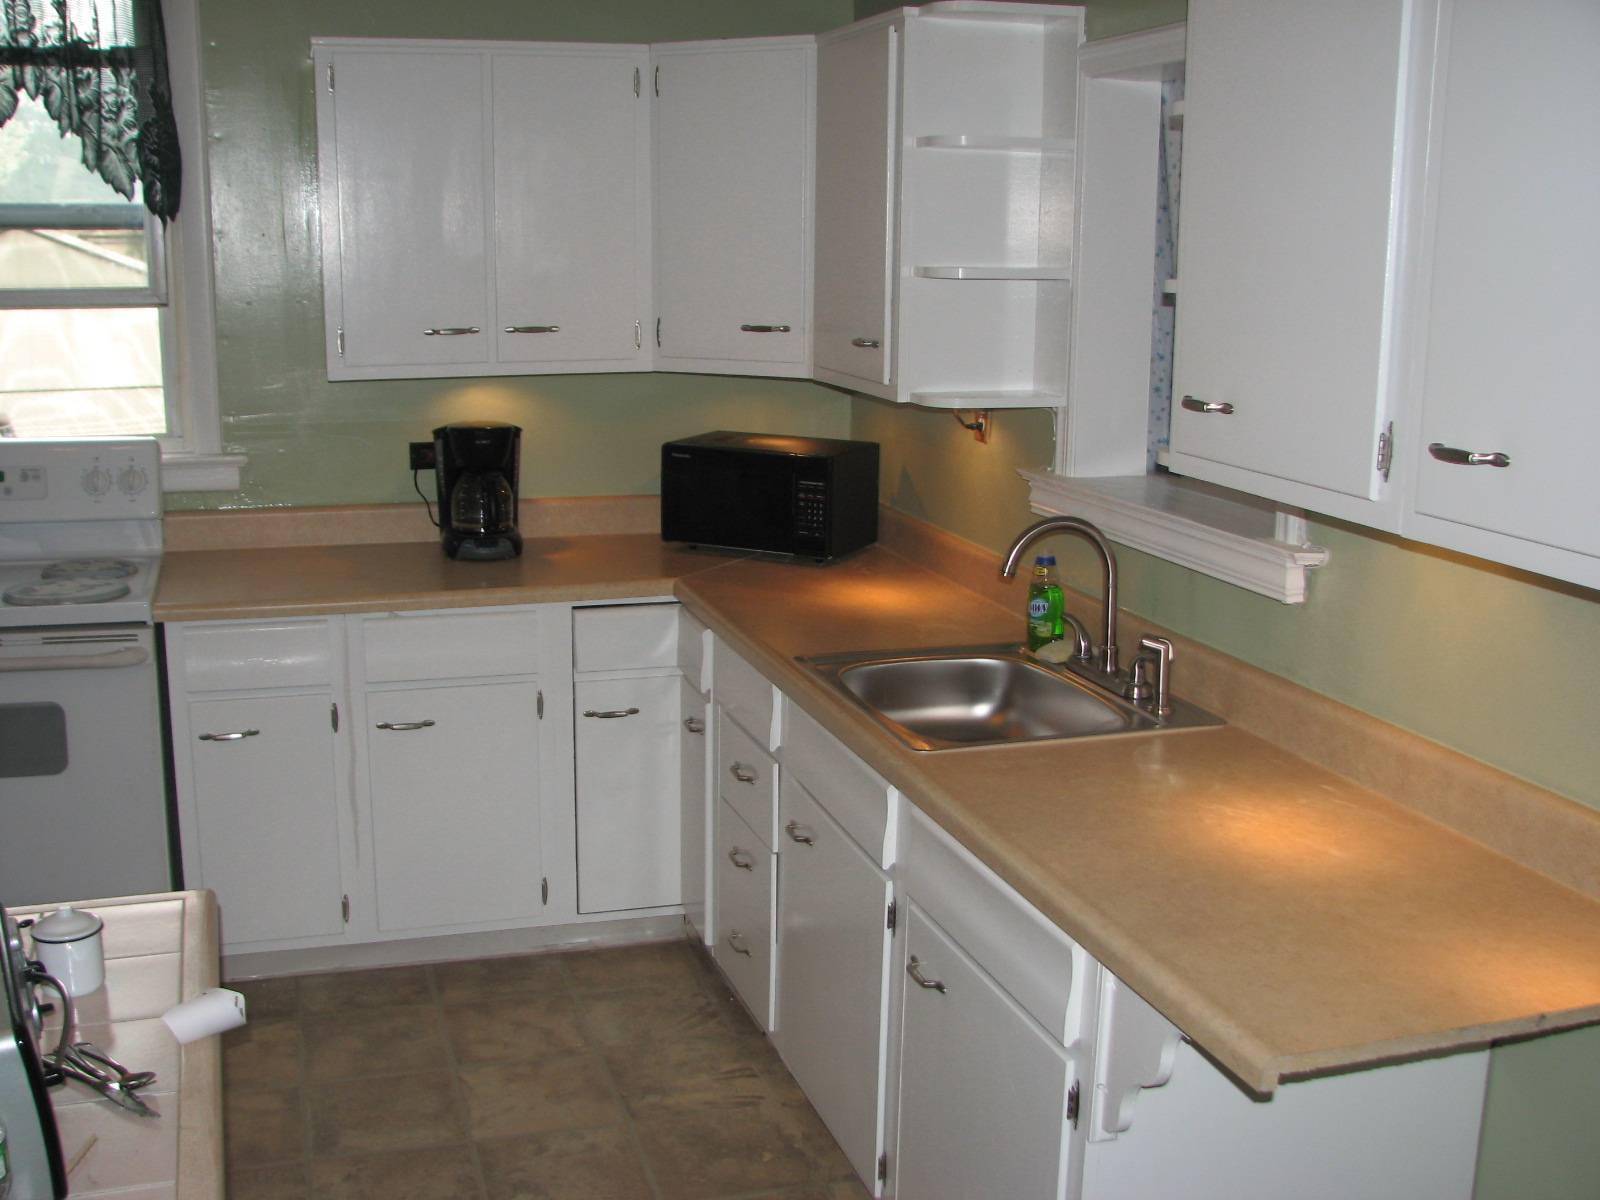 kitchen remodels before and after small kitchen remodel cost Small Kitchen Remodel Before and After kB jpeg